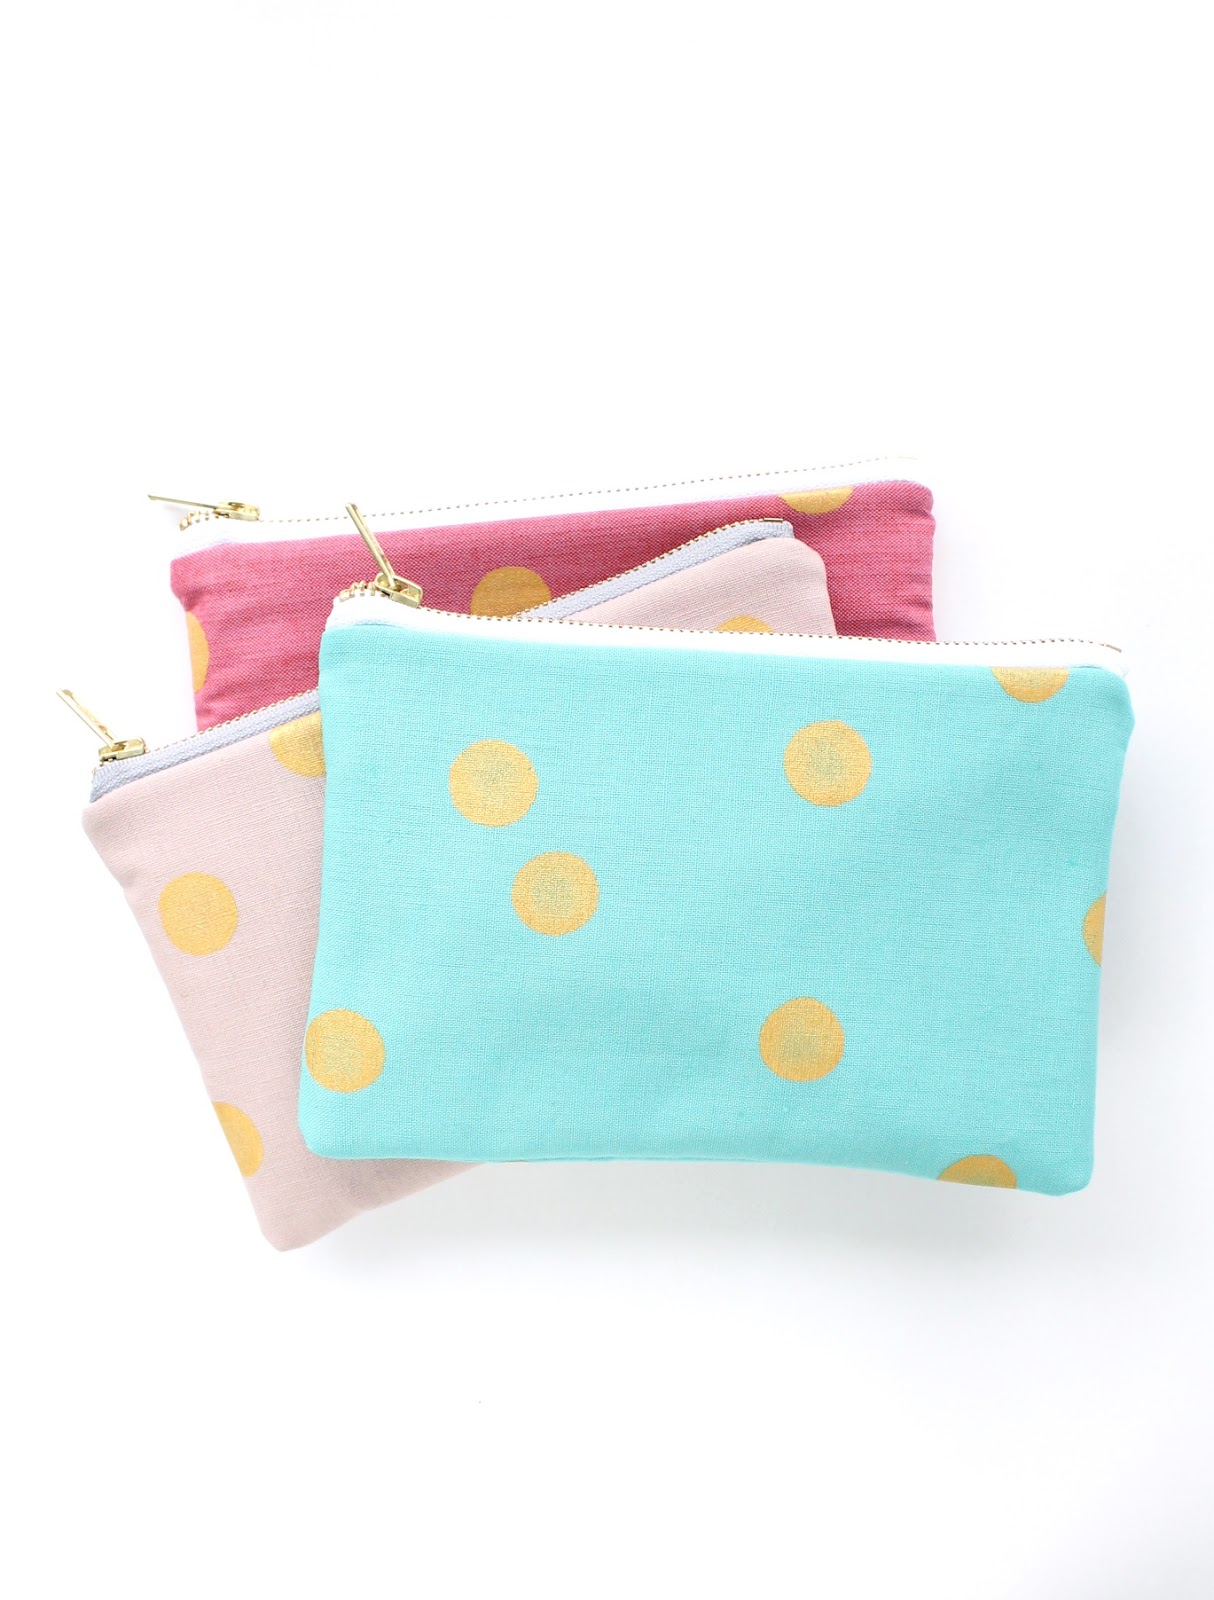 gold dot clutches by allisa jacobs